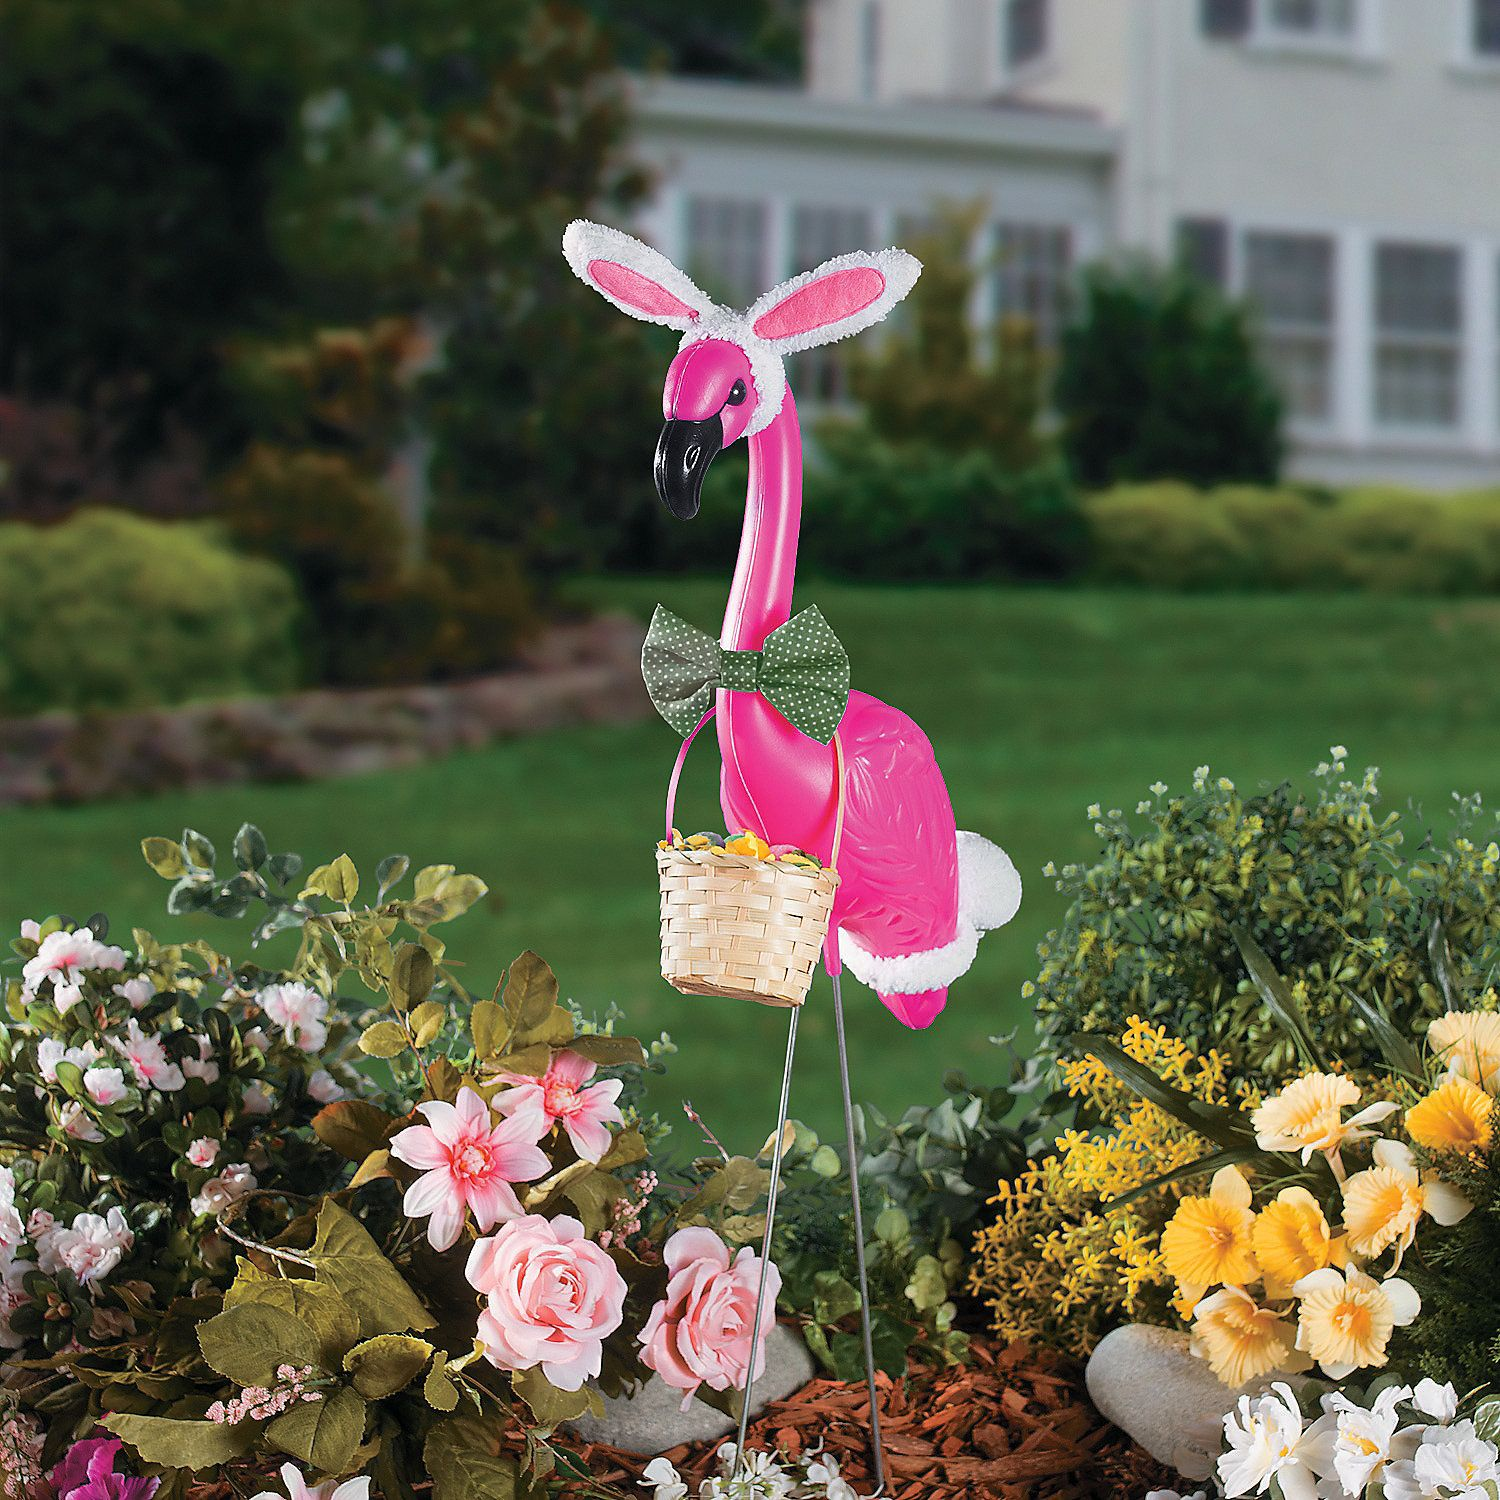 Flamingo Easter Outfit $4.98 The Flamingo Yard Ornament without ...